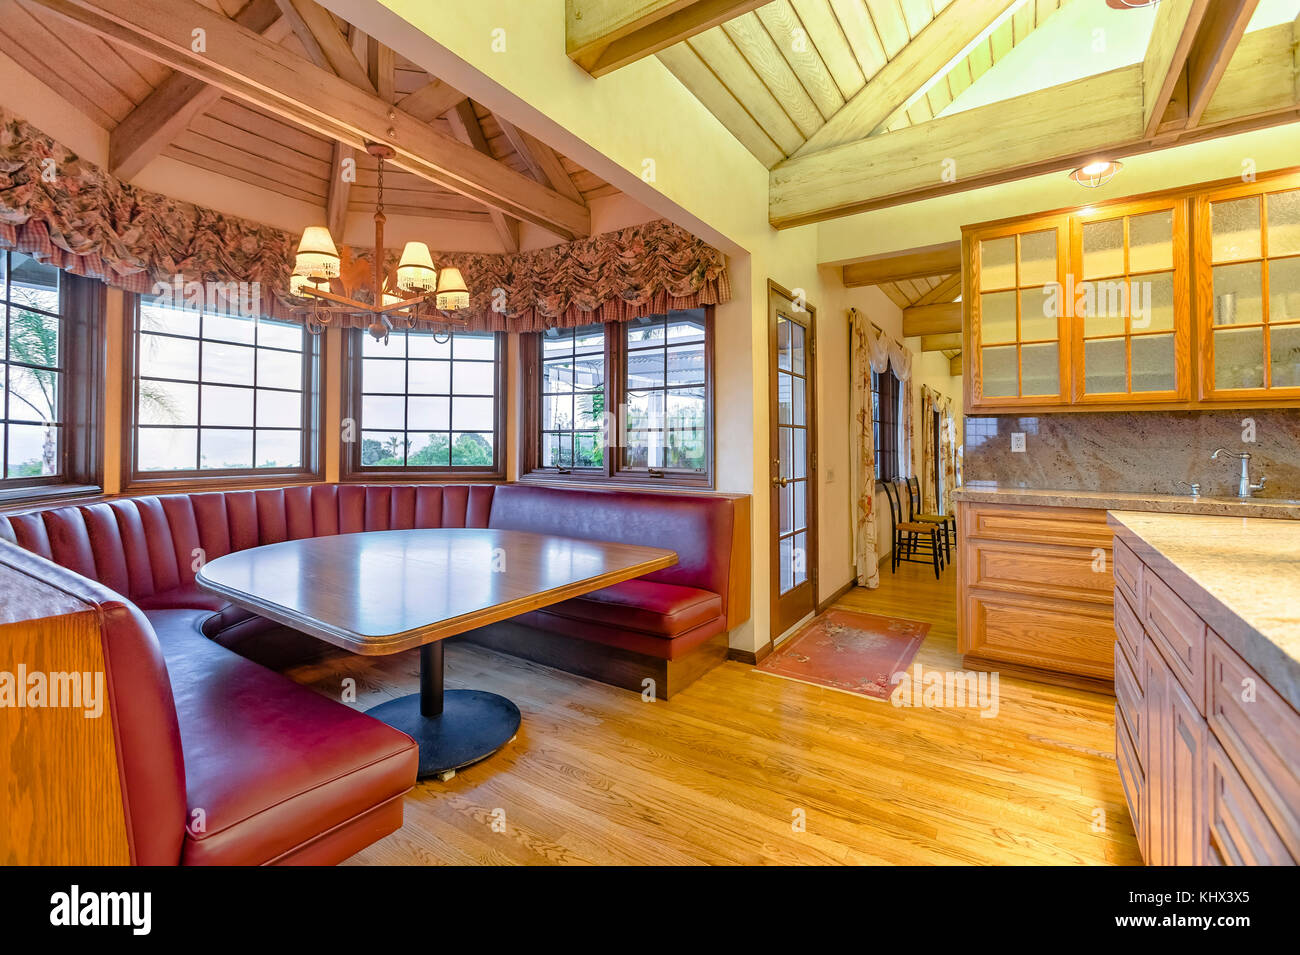 Bright Open And Warm Kitchen With Vaulted Ceilings And Booth Stock - Restaurant style kitchen table